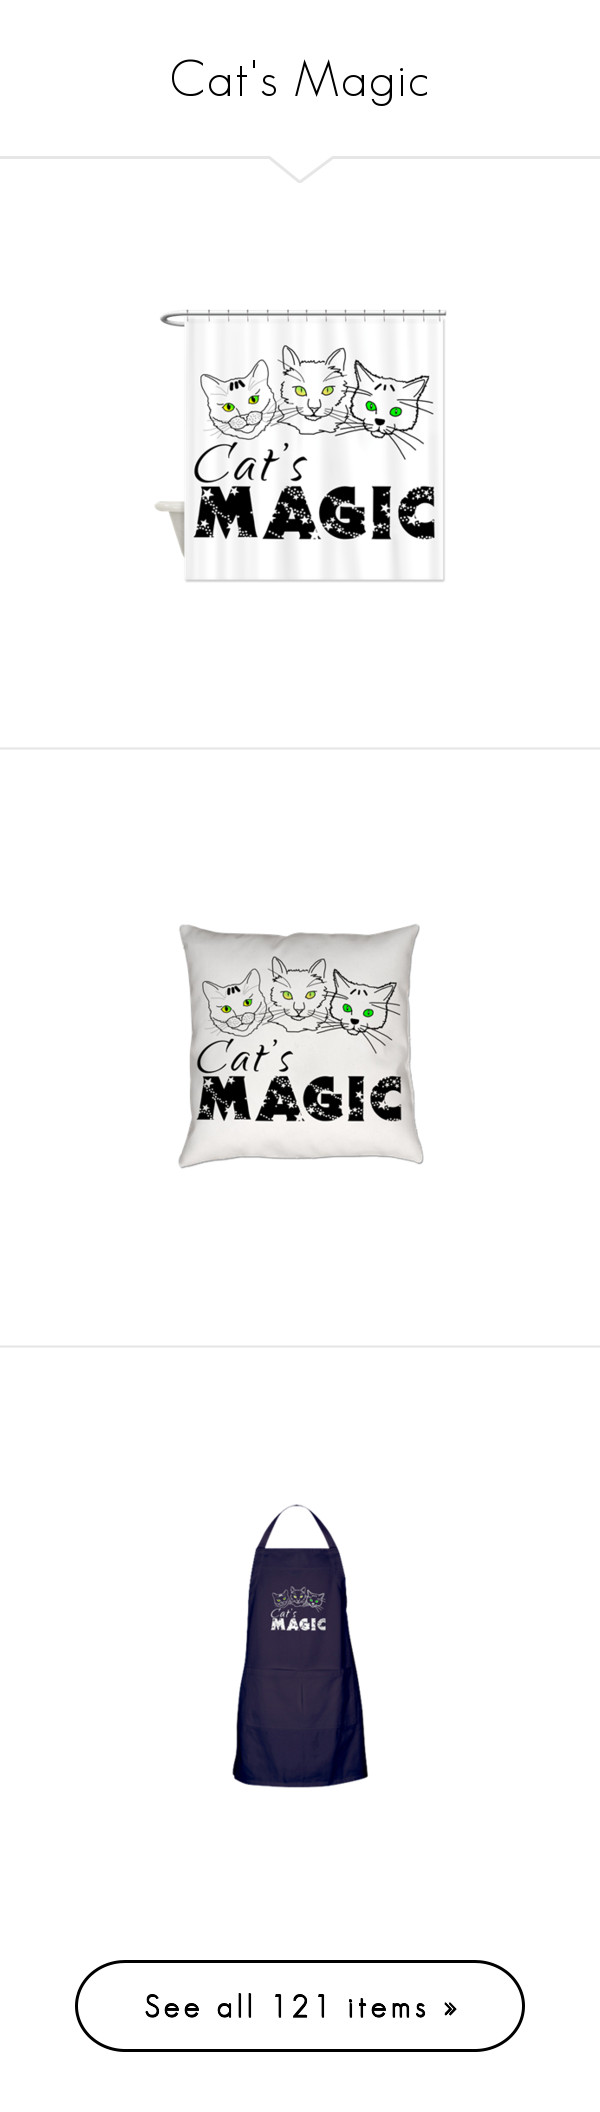 """""""Cat's Magic"""" by polyart-466 ❤ liked on Polyvore featuring home, bed & bath, bath, shower curtains, home decor, throw pillows, office accessories, tops, t-shirts and accessories"""